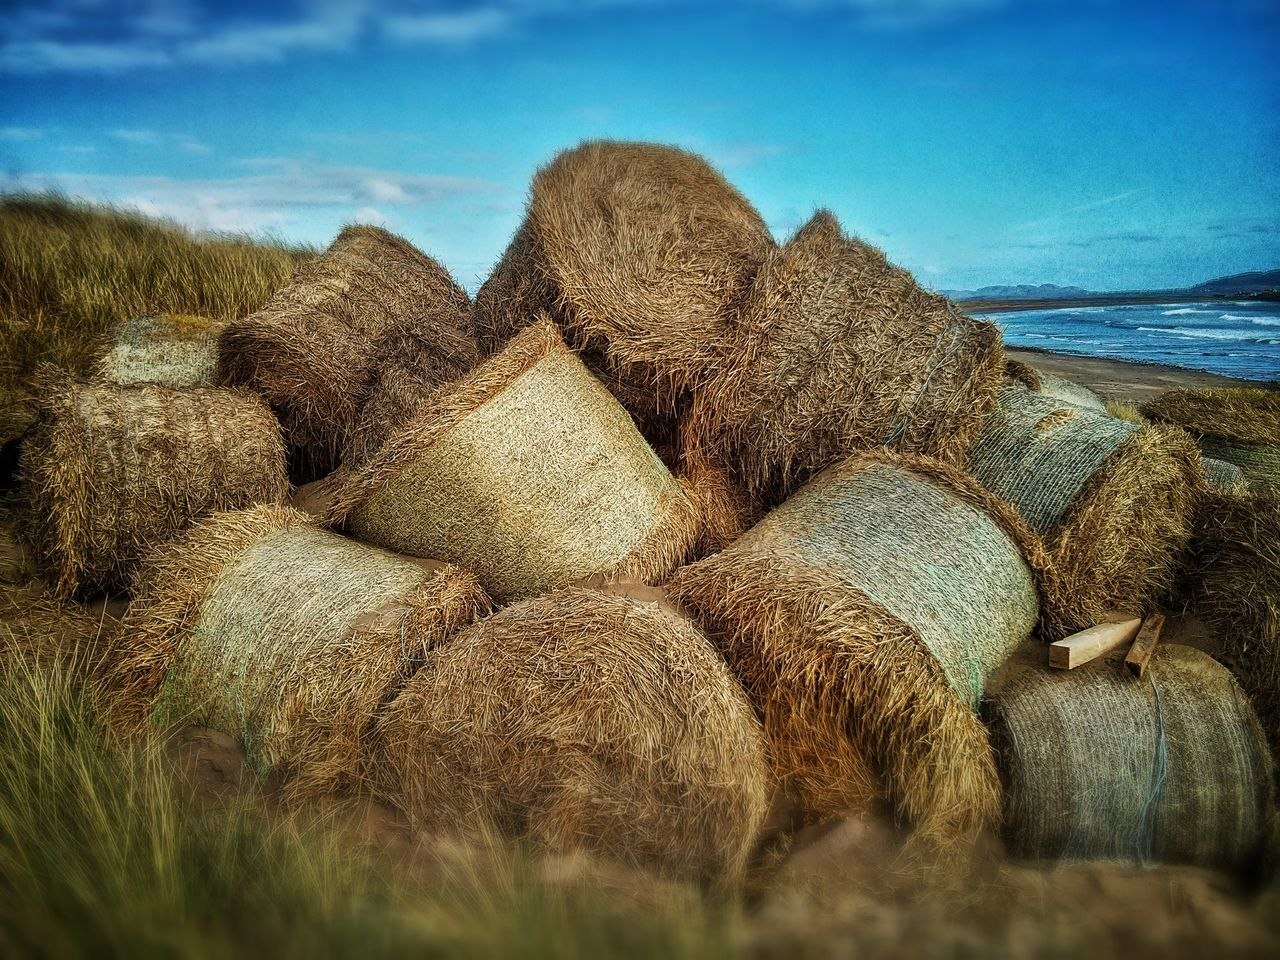 Hay Bales Blue Sky Beach Coastal Defences Ireland Hidden Places Warm Showcase: February How Do We Build The World? Landscapes With WhiteWall Blue Wave Telling Stories Differently My Favorite Photo The Great Outdoors With Adobe Feel The Journey 43 Golden Moments